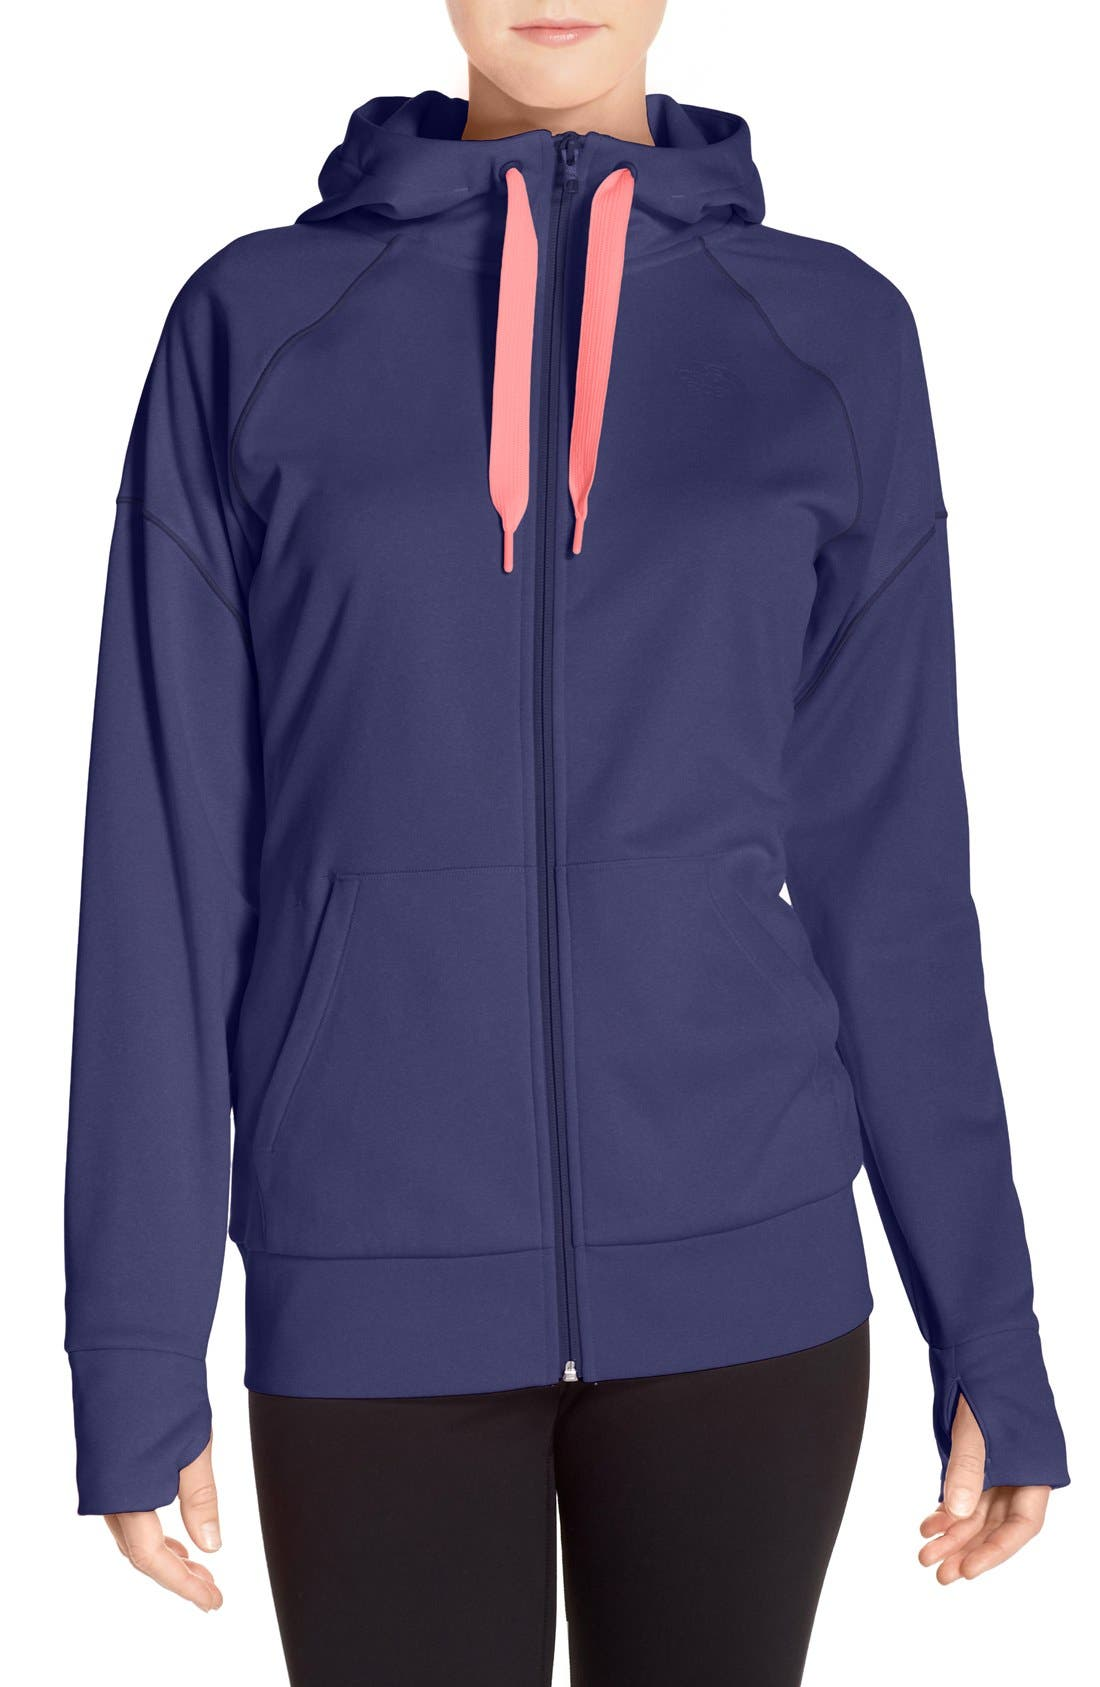 Main Image - The North Face 'Suprema' Hoodie